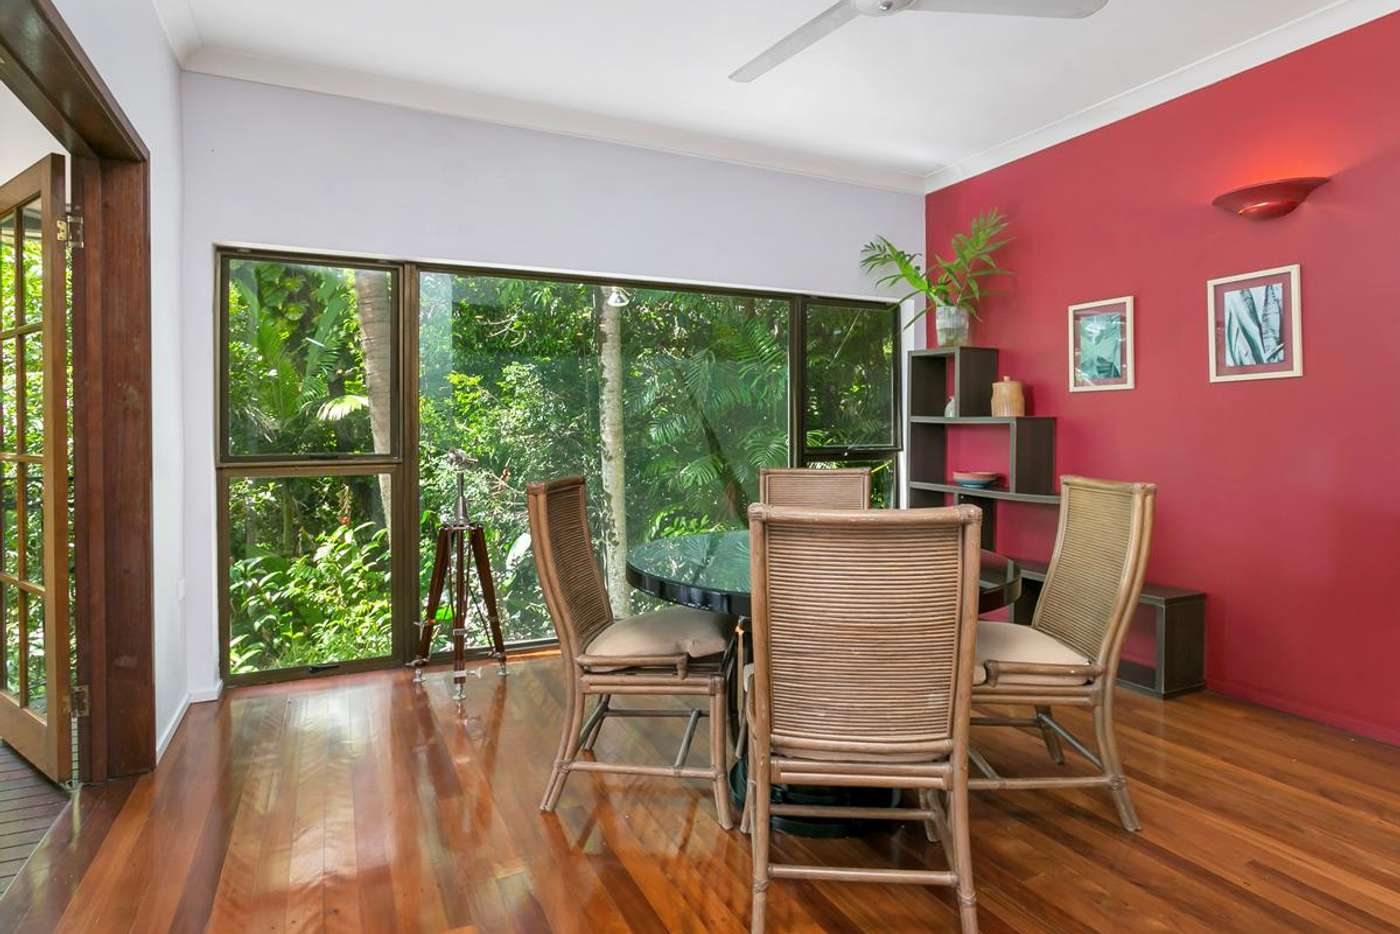 Seventh view of Homely house listing, 19 Slate Close, Brinsmead QLD 4870